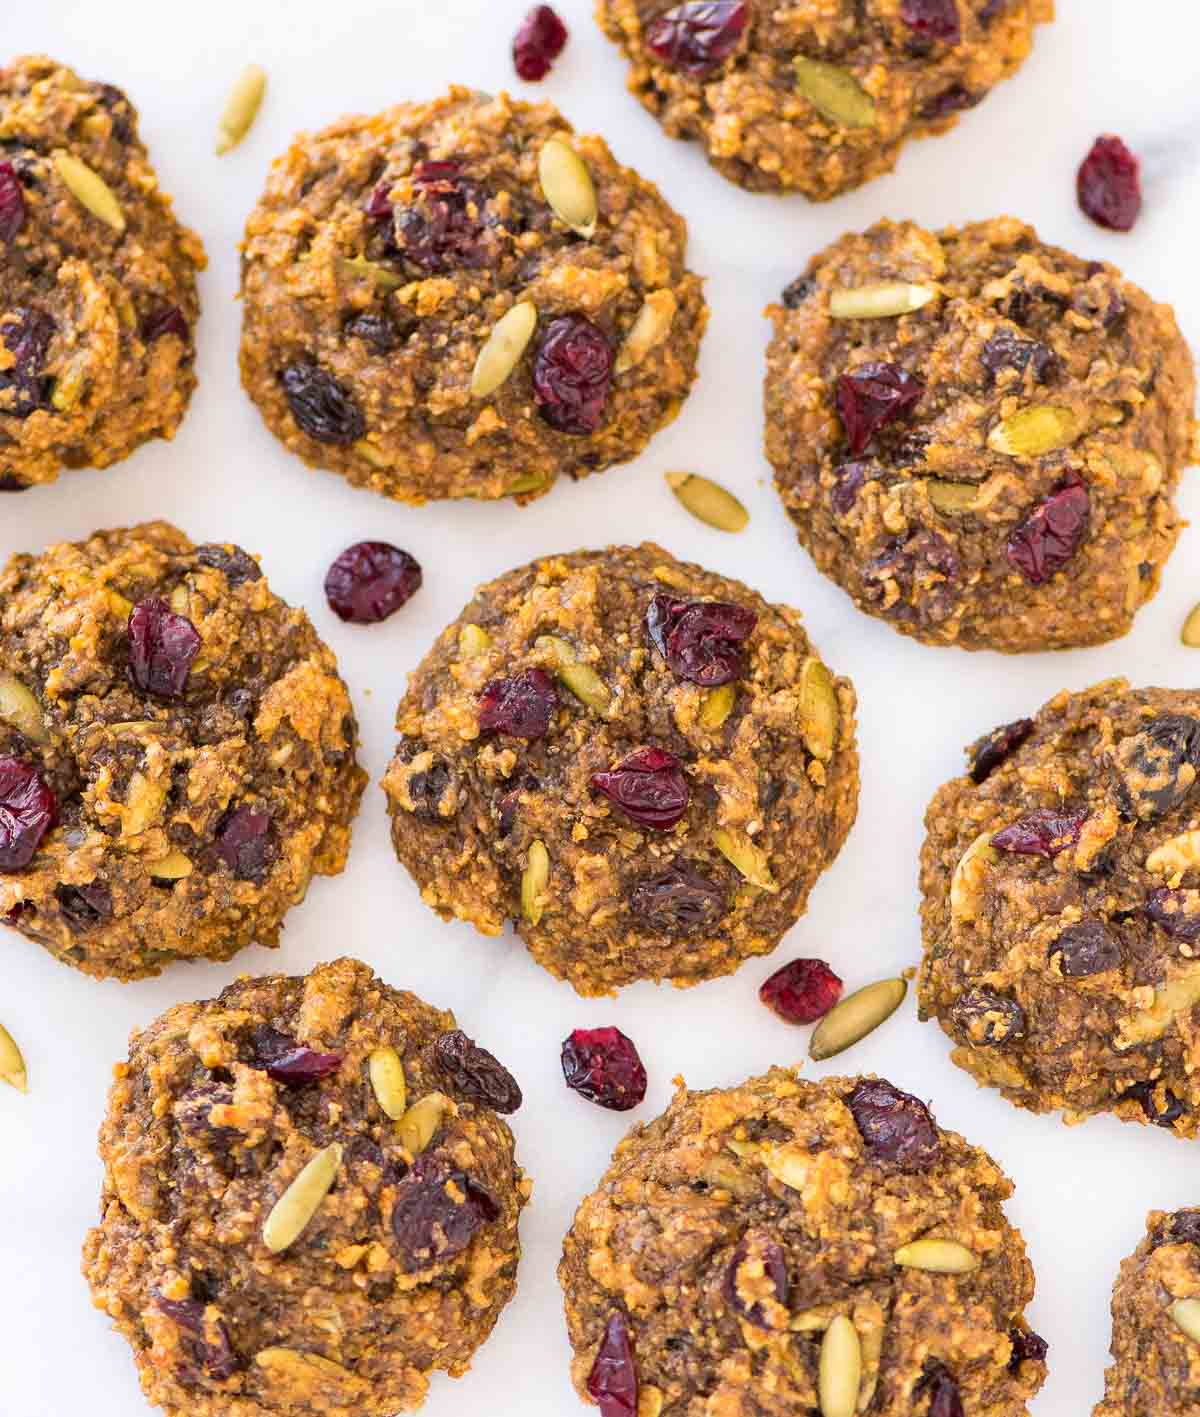 Peanut Butter Protein Cookies - 6g. protein, NO protein powder required! Flourless, naturally sweetened with banana, and loaded with oatmeal and all of your favorite mix-ins. Easy, gluten free recipe that's perfect for a healthy breakfast or post-workout snack. Recipe at wellplated.com   @wellplated